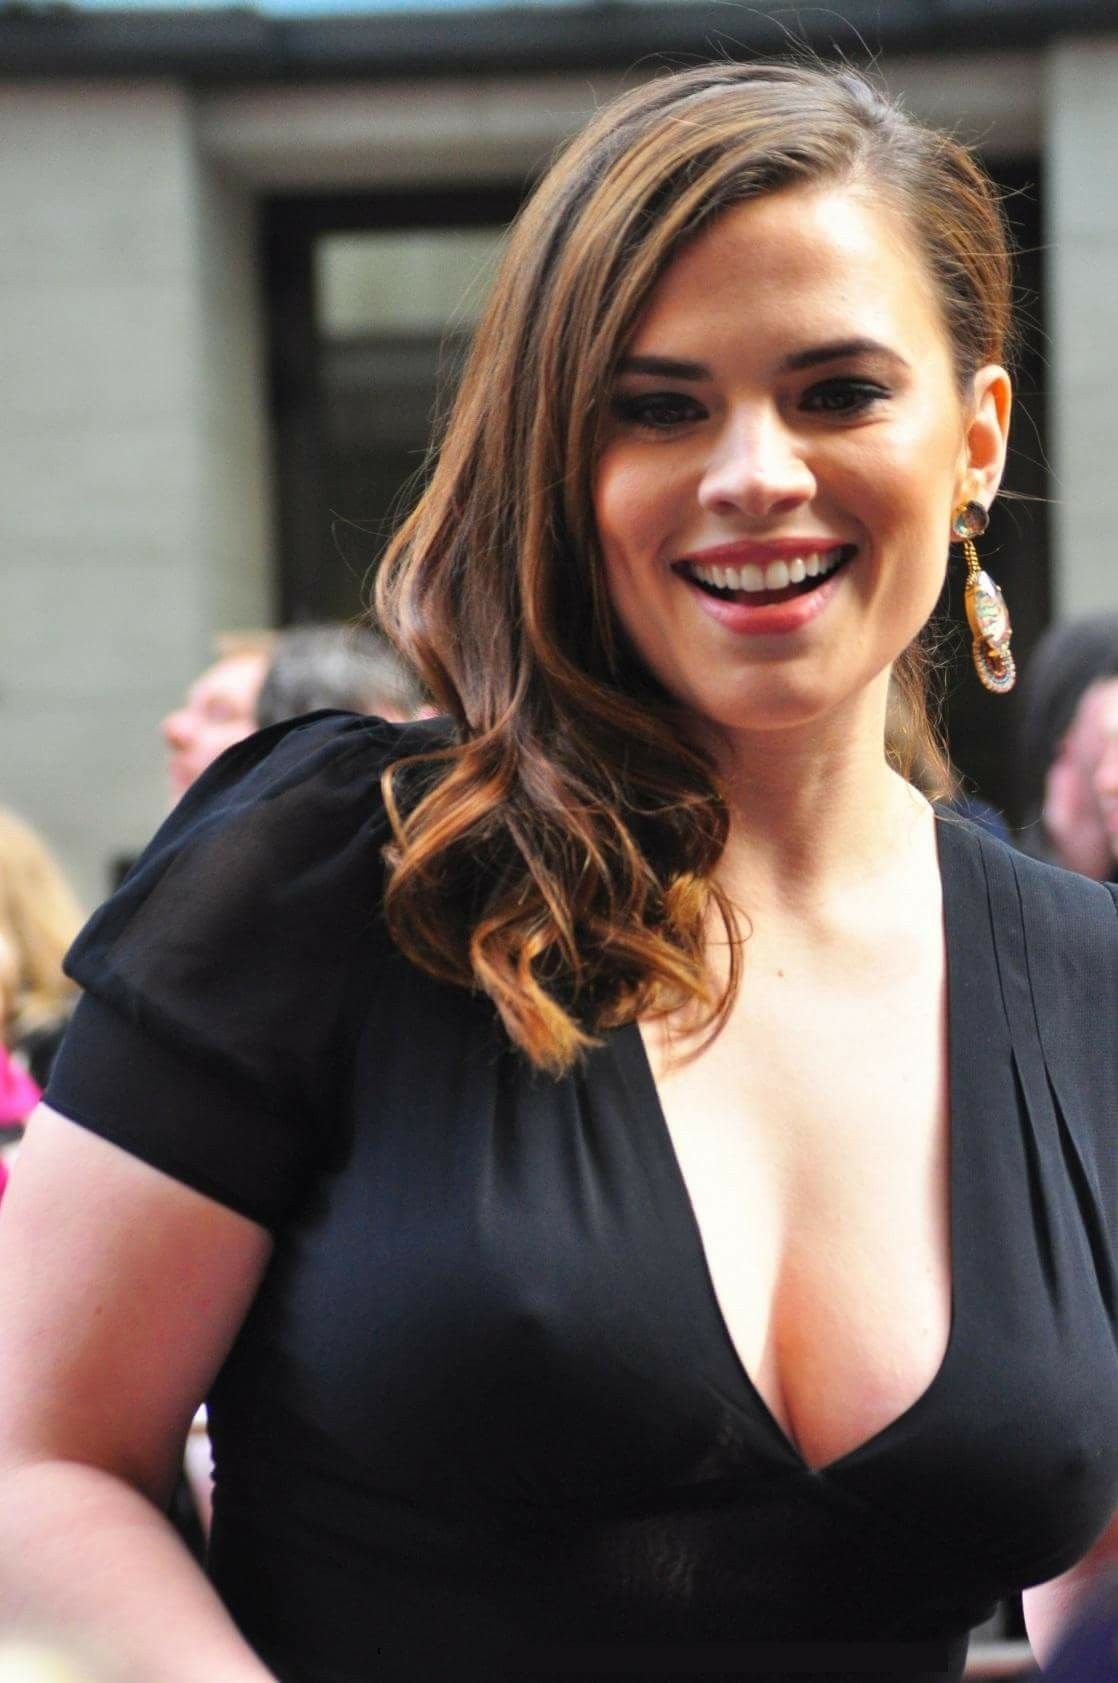 TheFappening Hayley Atwell nudes (11 foto and video), Pussy, Leaked, Boobs, braless 2006